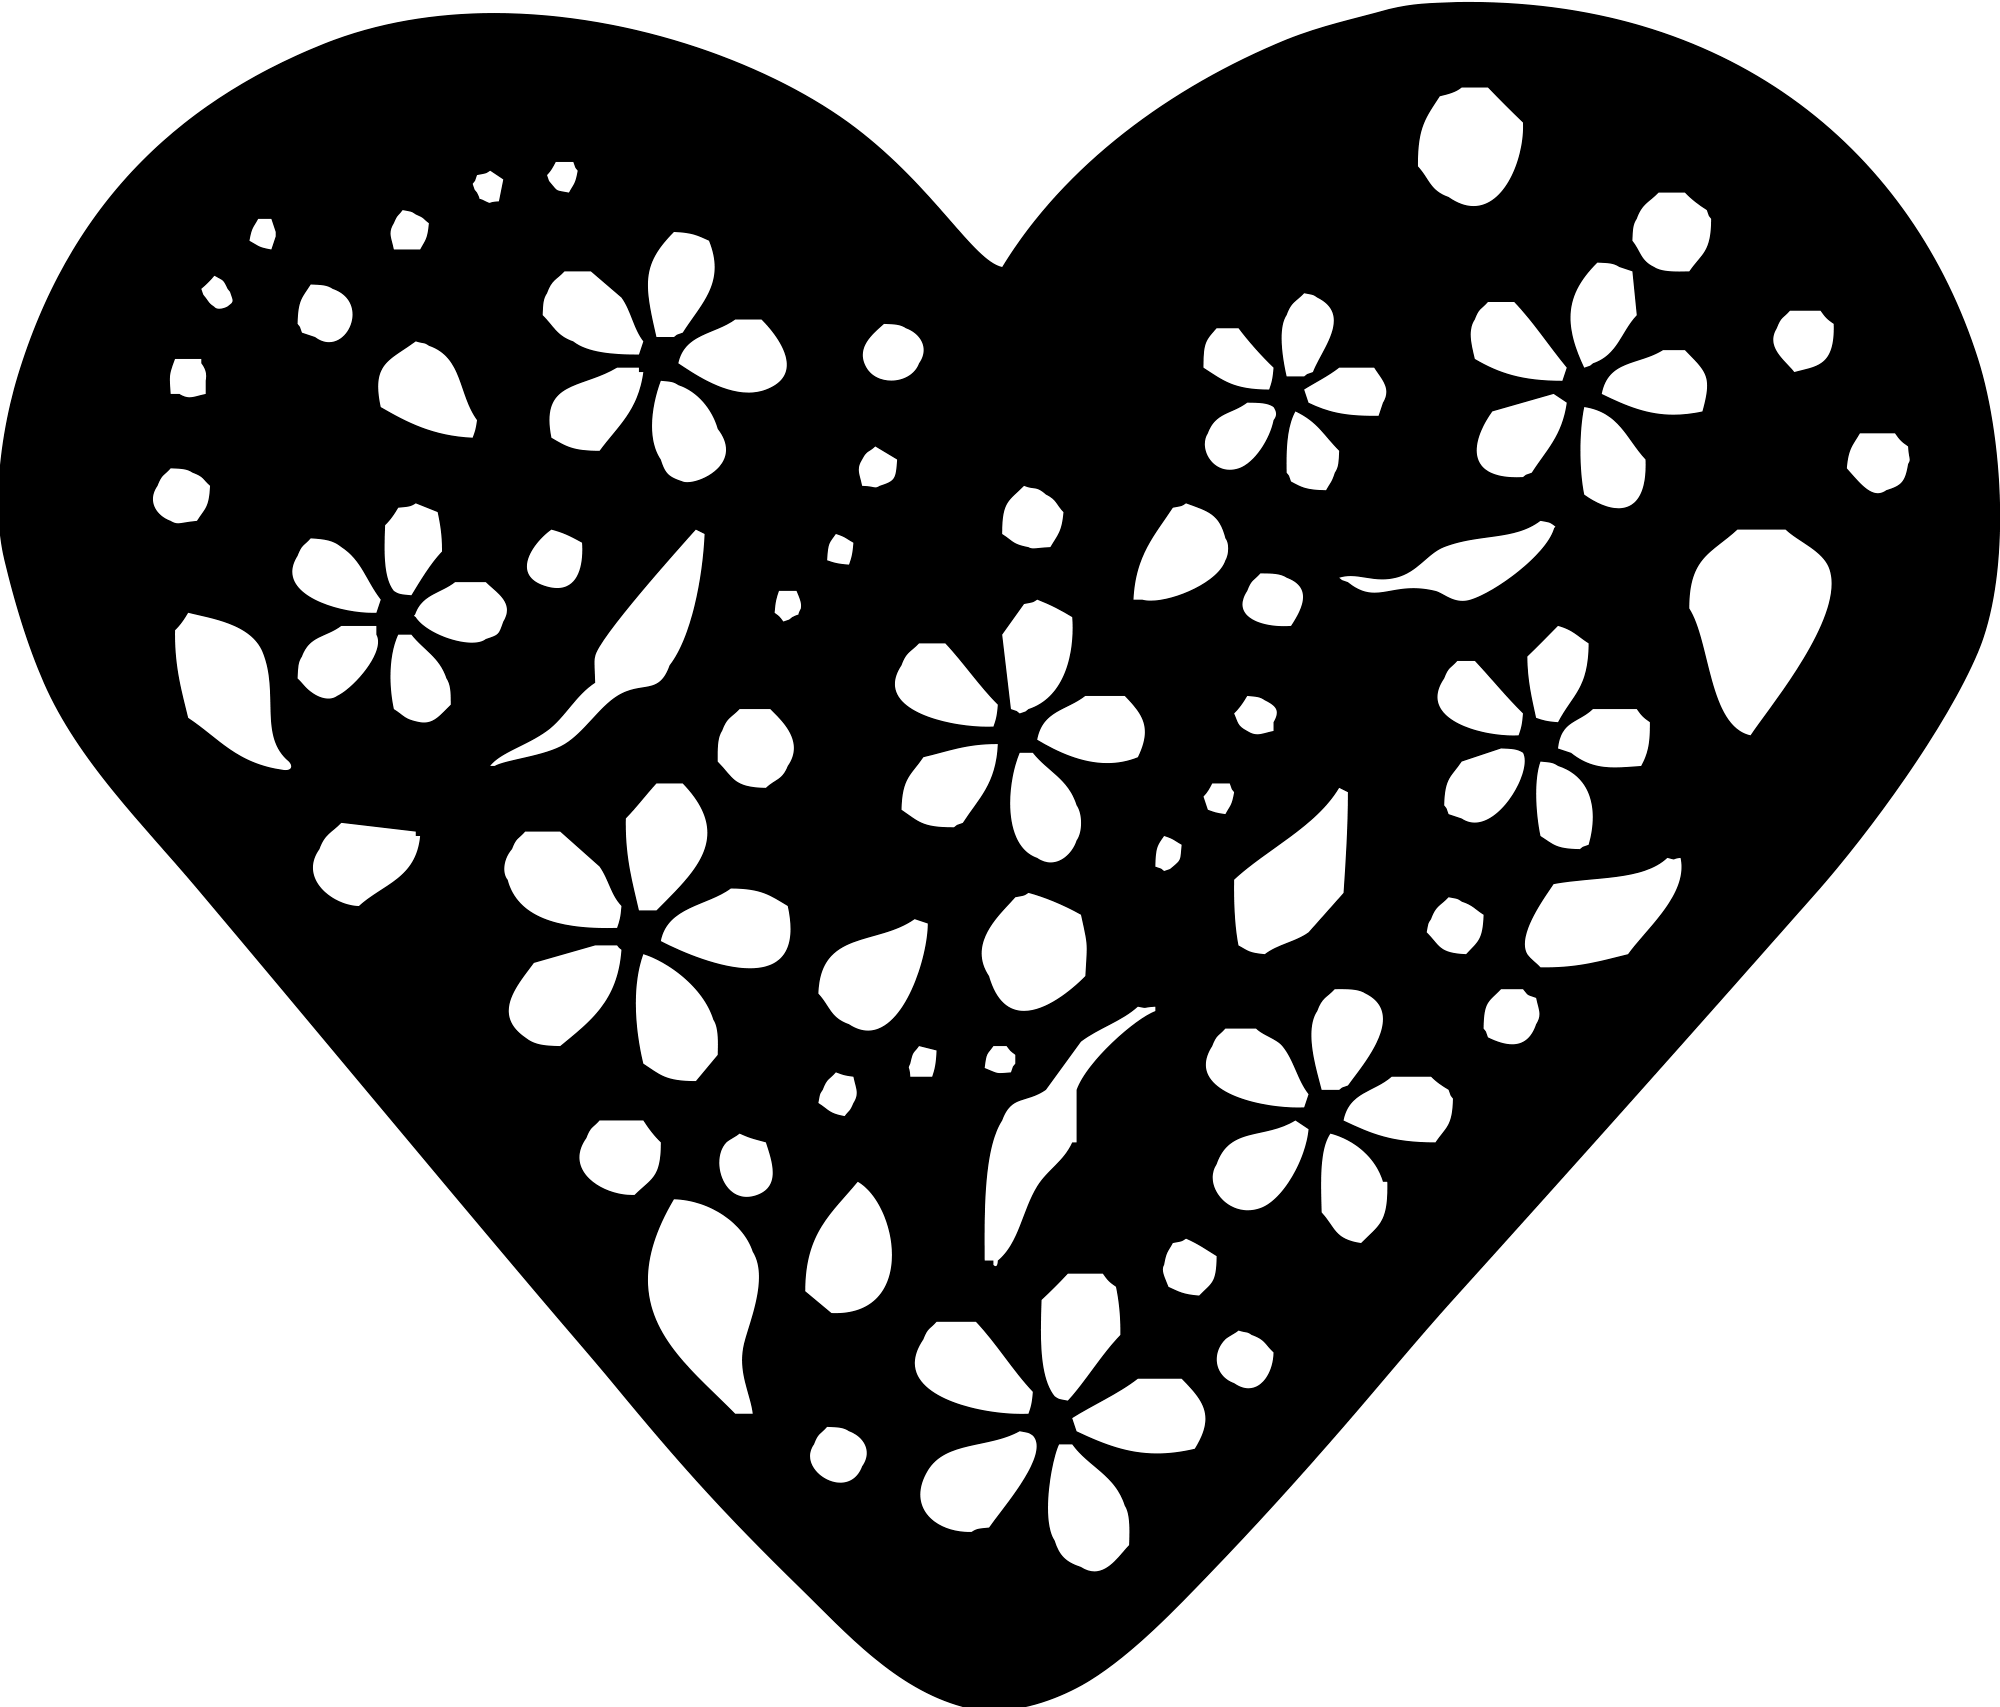 printable heart pictures free printable heart coloring pages for kids heart pictures printable 1 1